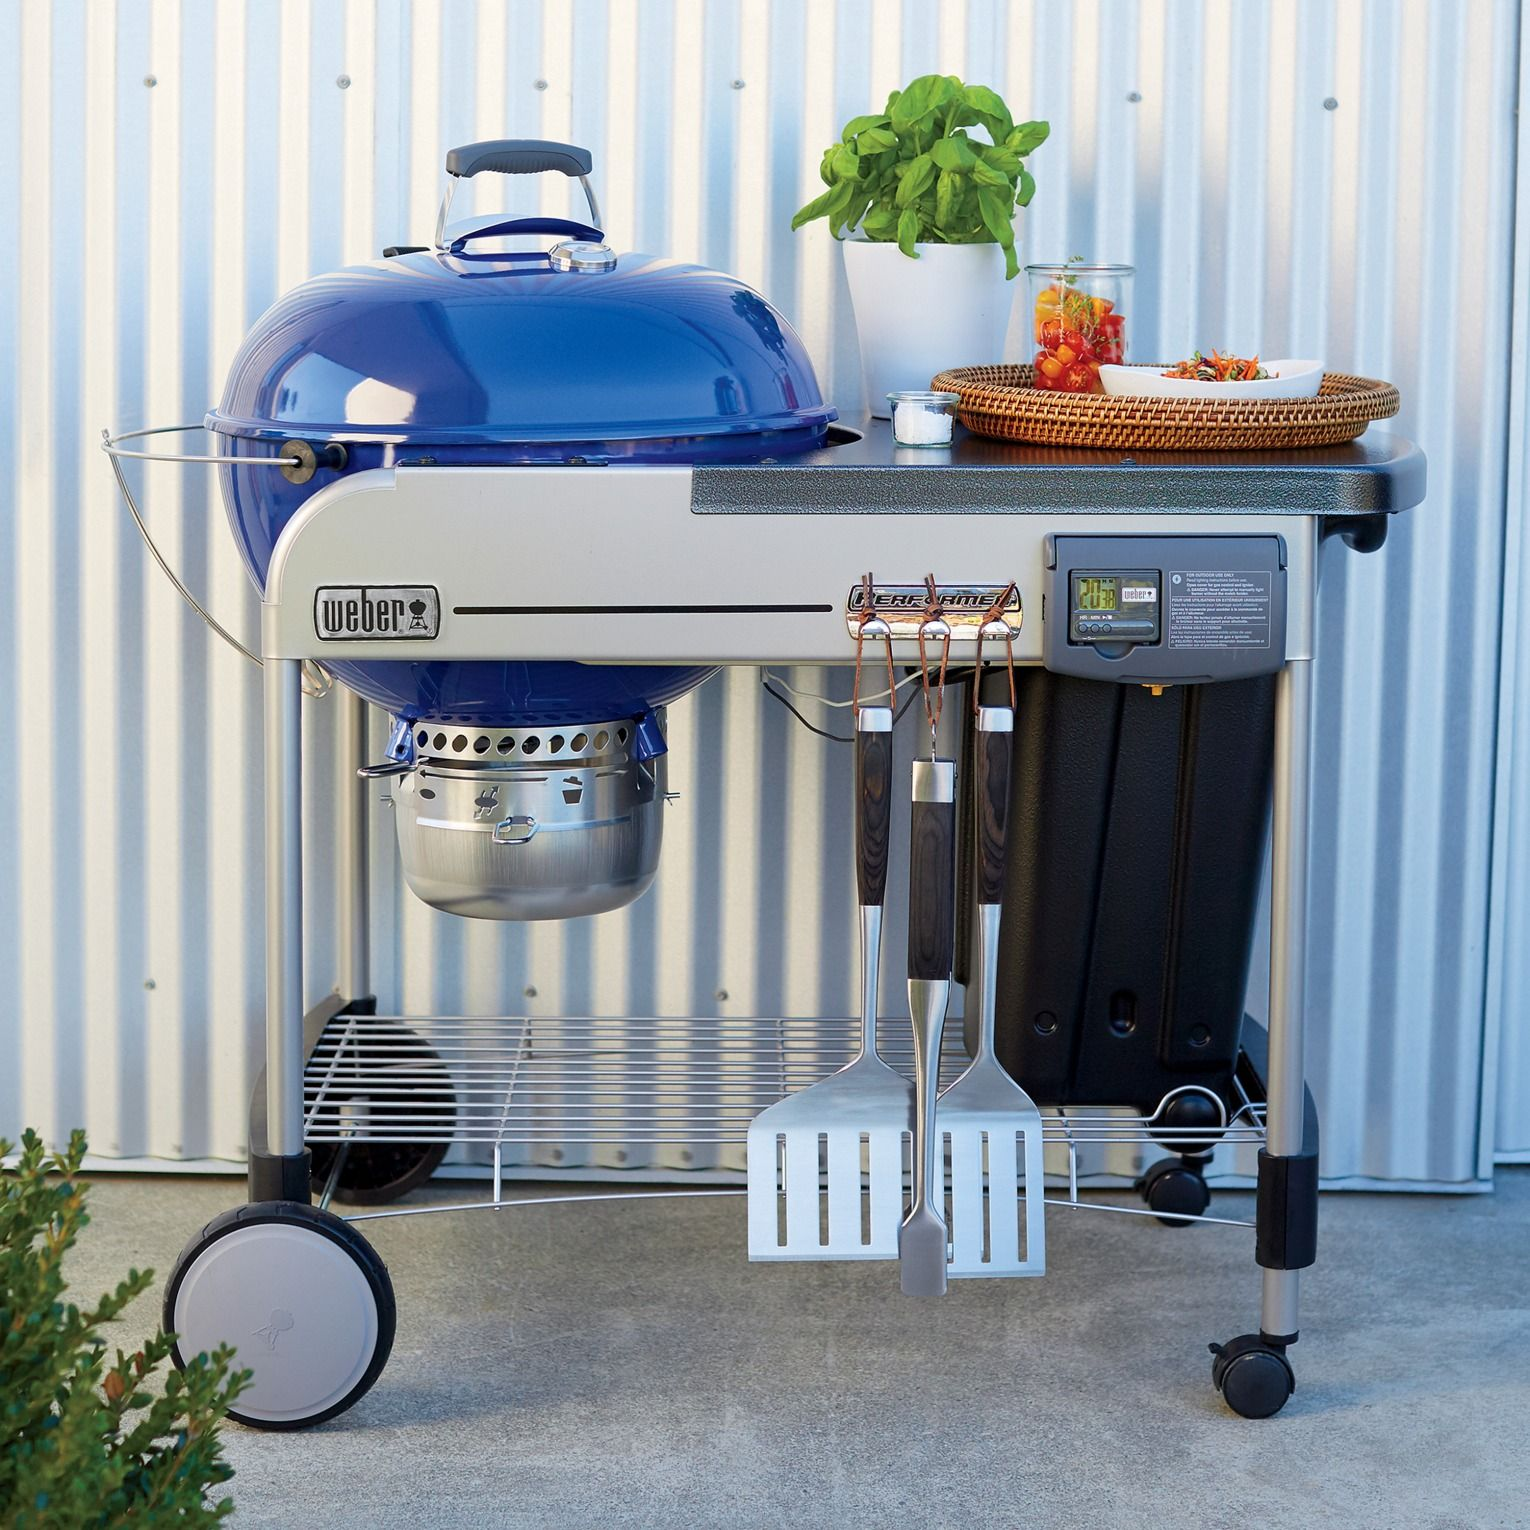 Weber Blue Performer Deluxe Charcoal Grill Charcoal Grill Grill Accessories Grilling